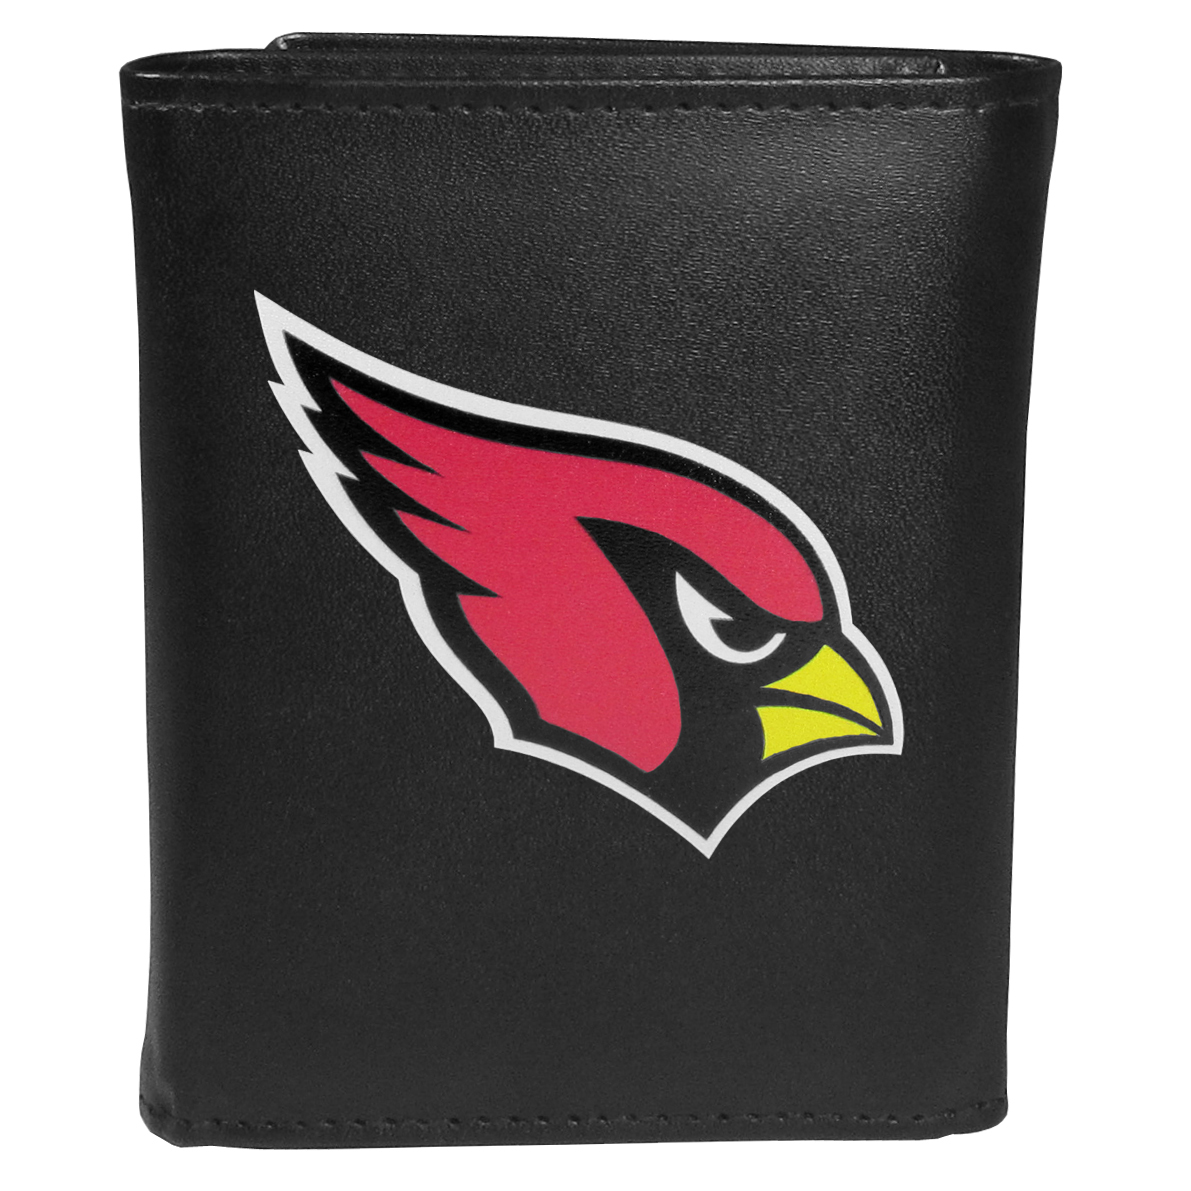 Arizona Cardinals Tri-fold Wallet Large Logo - Sports fans do not have to sacrifice style with this classic tri-fold wallet that sports theArizona Cardinals?extra large logo. This men's fashion accessory has a leather grain look and expert craftmanship for a quality wallet at a great price. The wallet features inner credit card slots, windowed ID slot and a large billfold pocket. The front of the wallet features an extra large printed team logo.